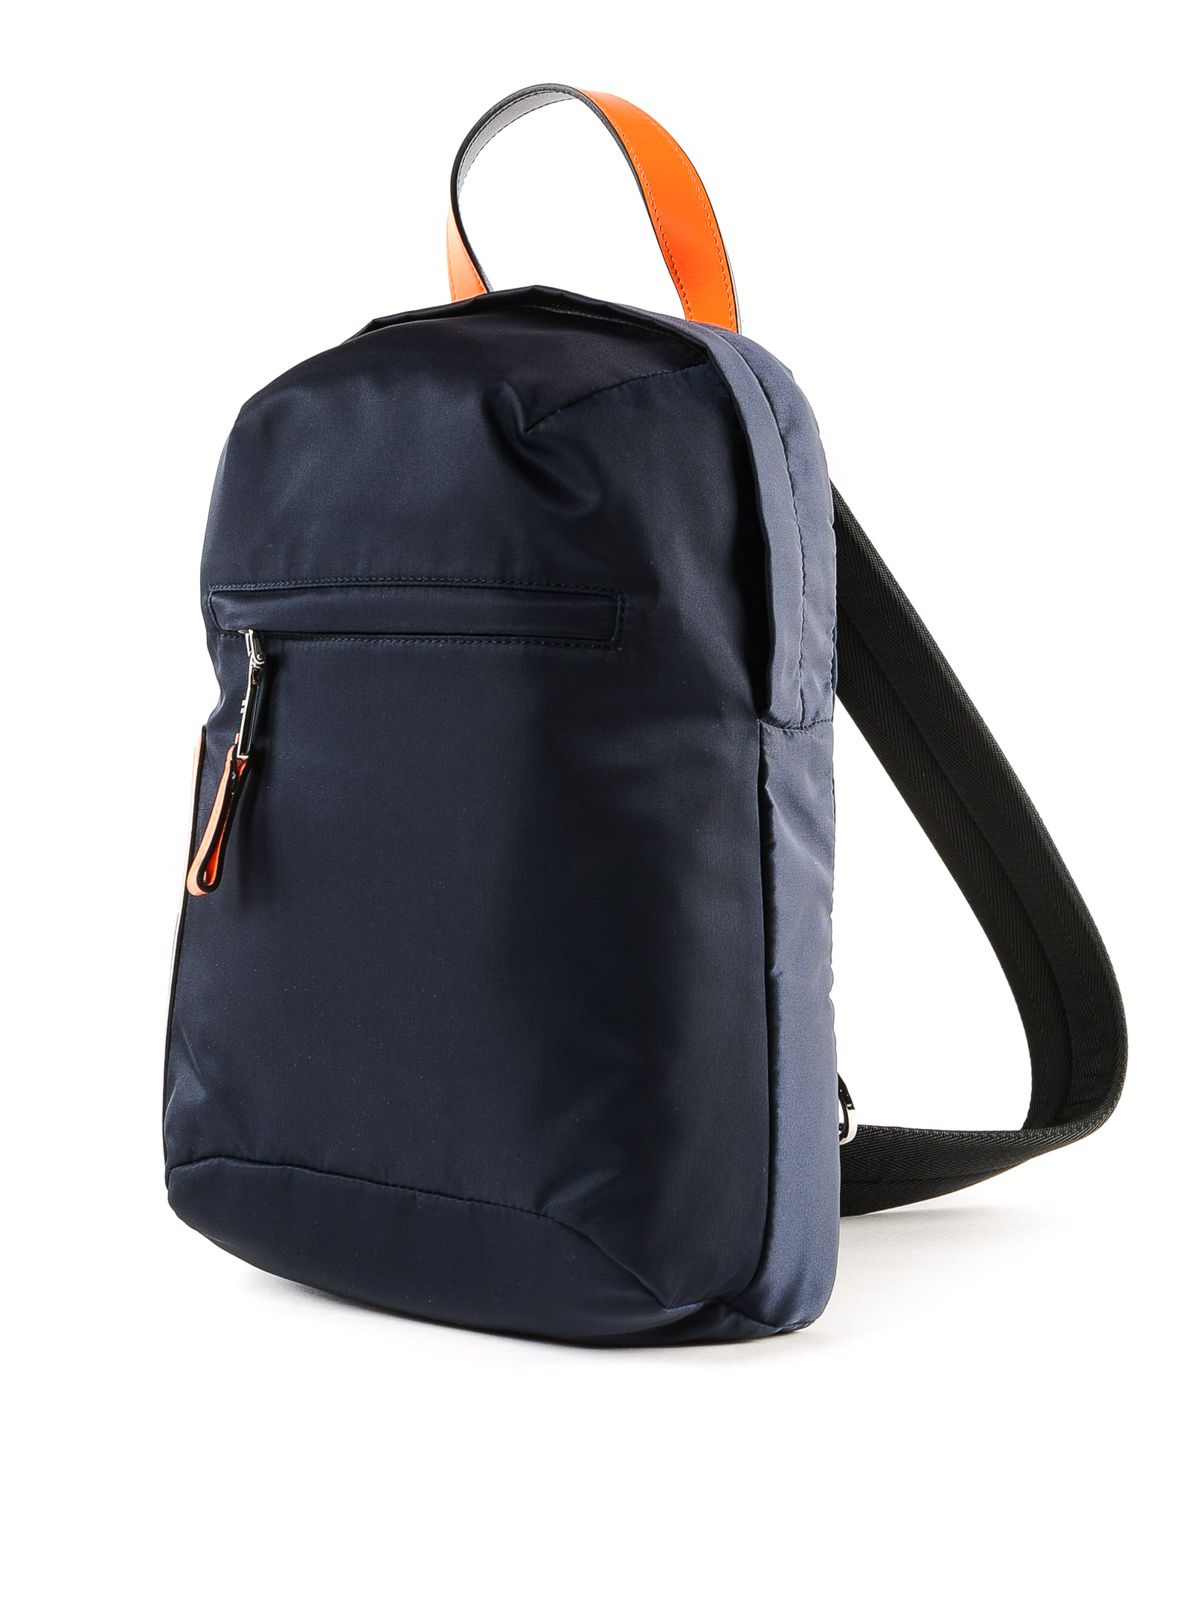 d344a26386201e Prada - Dark blue nylon one shoulder backpack - backpacks - 2VZ023 ...